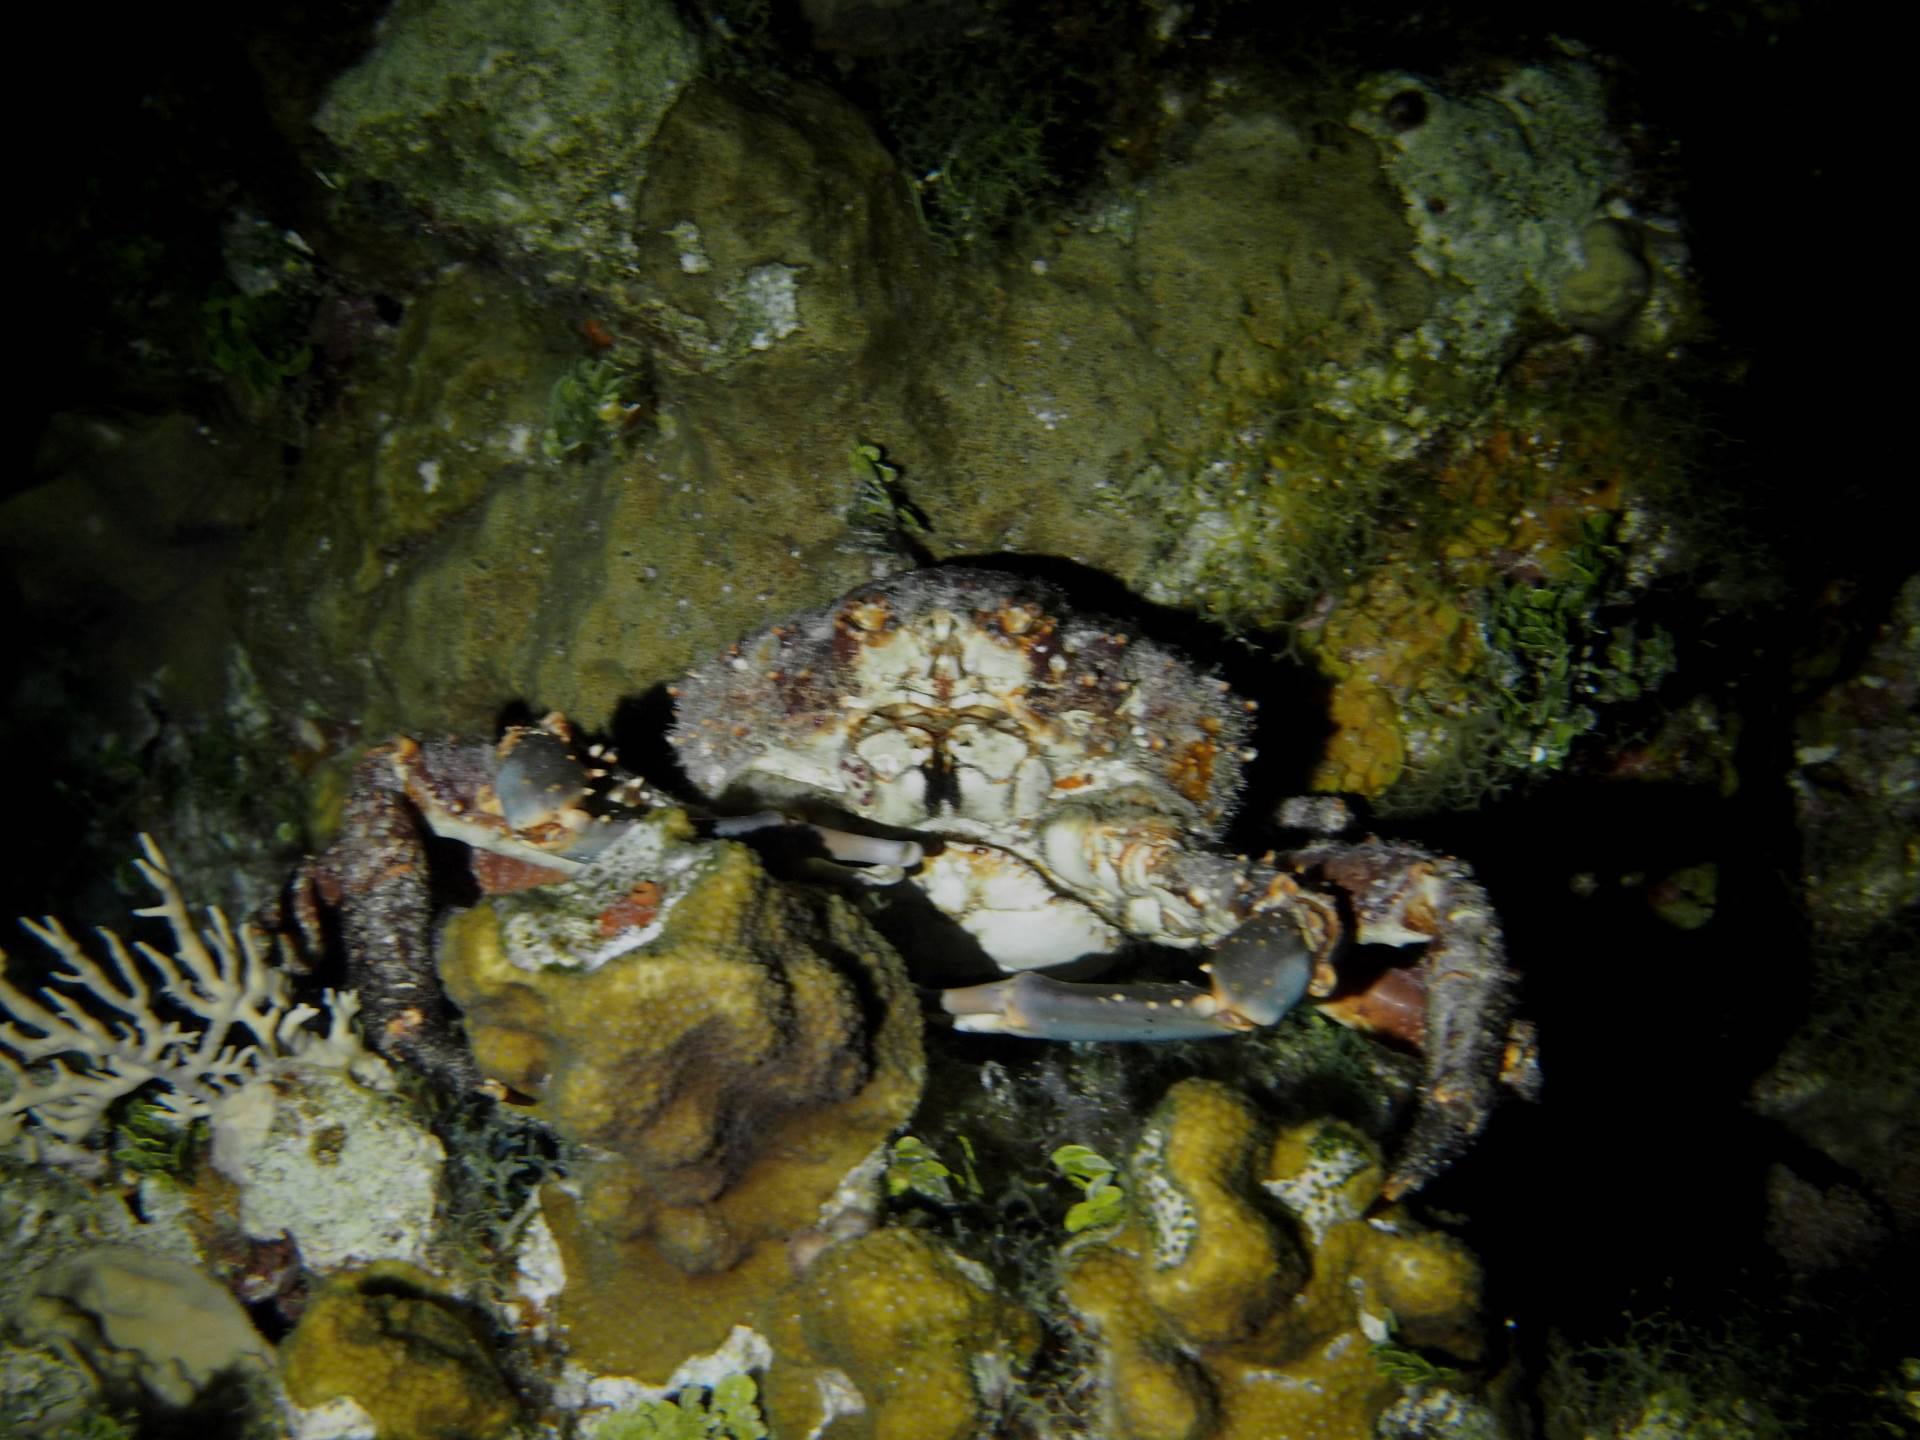 Channel Clining Crab